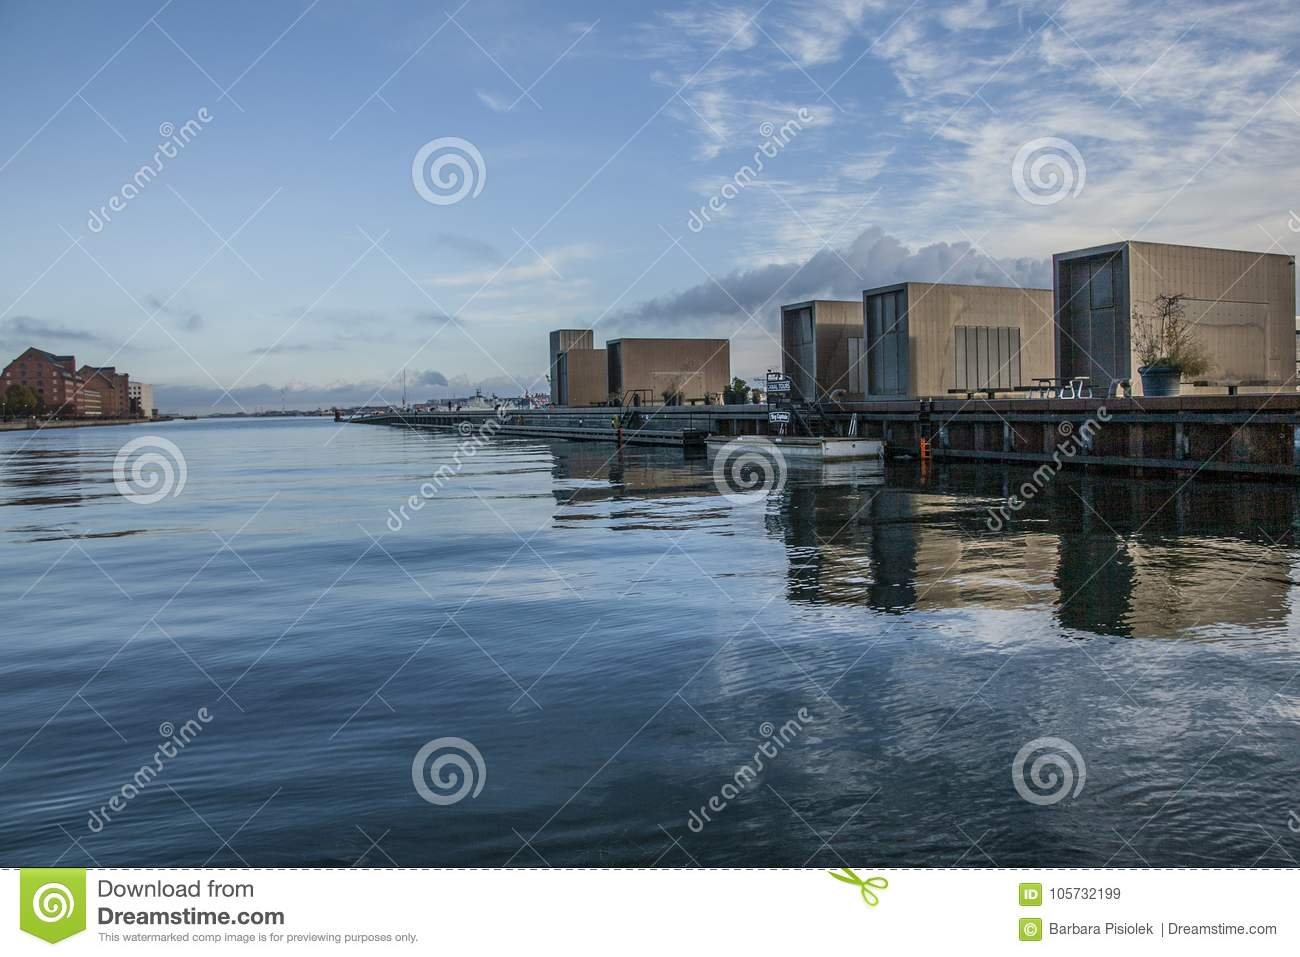 Copenhagen, Denmark - blue skies and seas and reflections of some buildings.